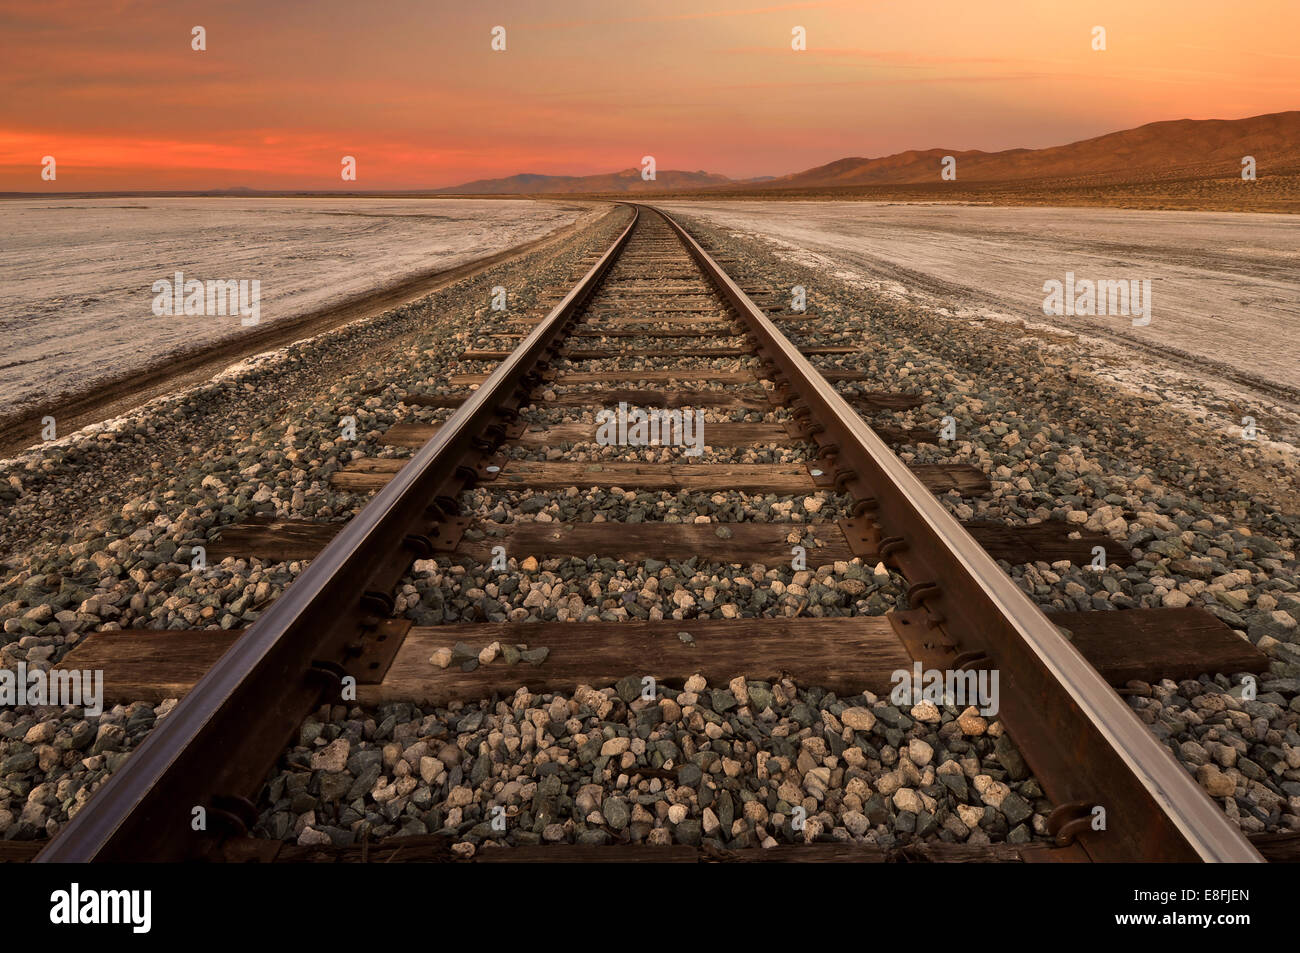 USA, California, Railroad Tracks Through Koehn Dry Lake on Mojave Desert - Stock Image